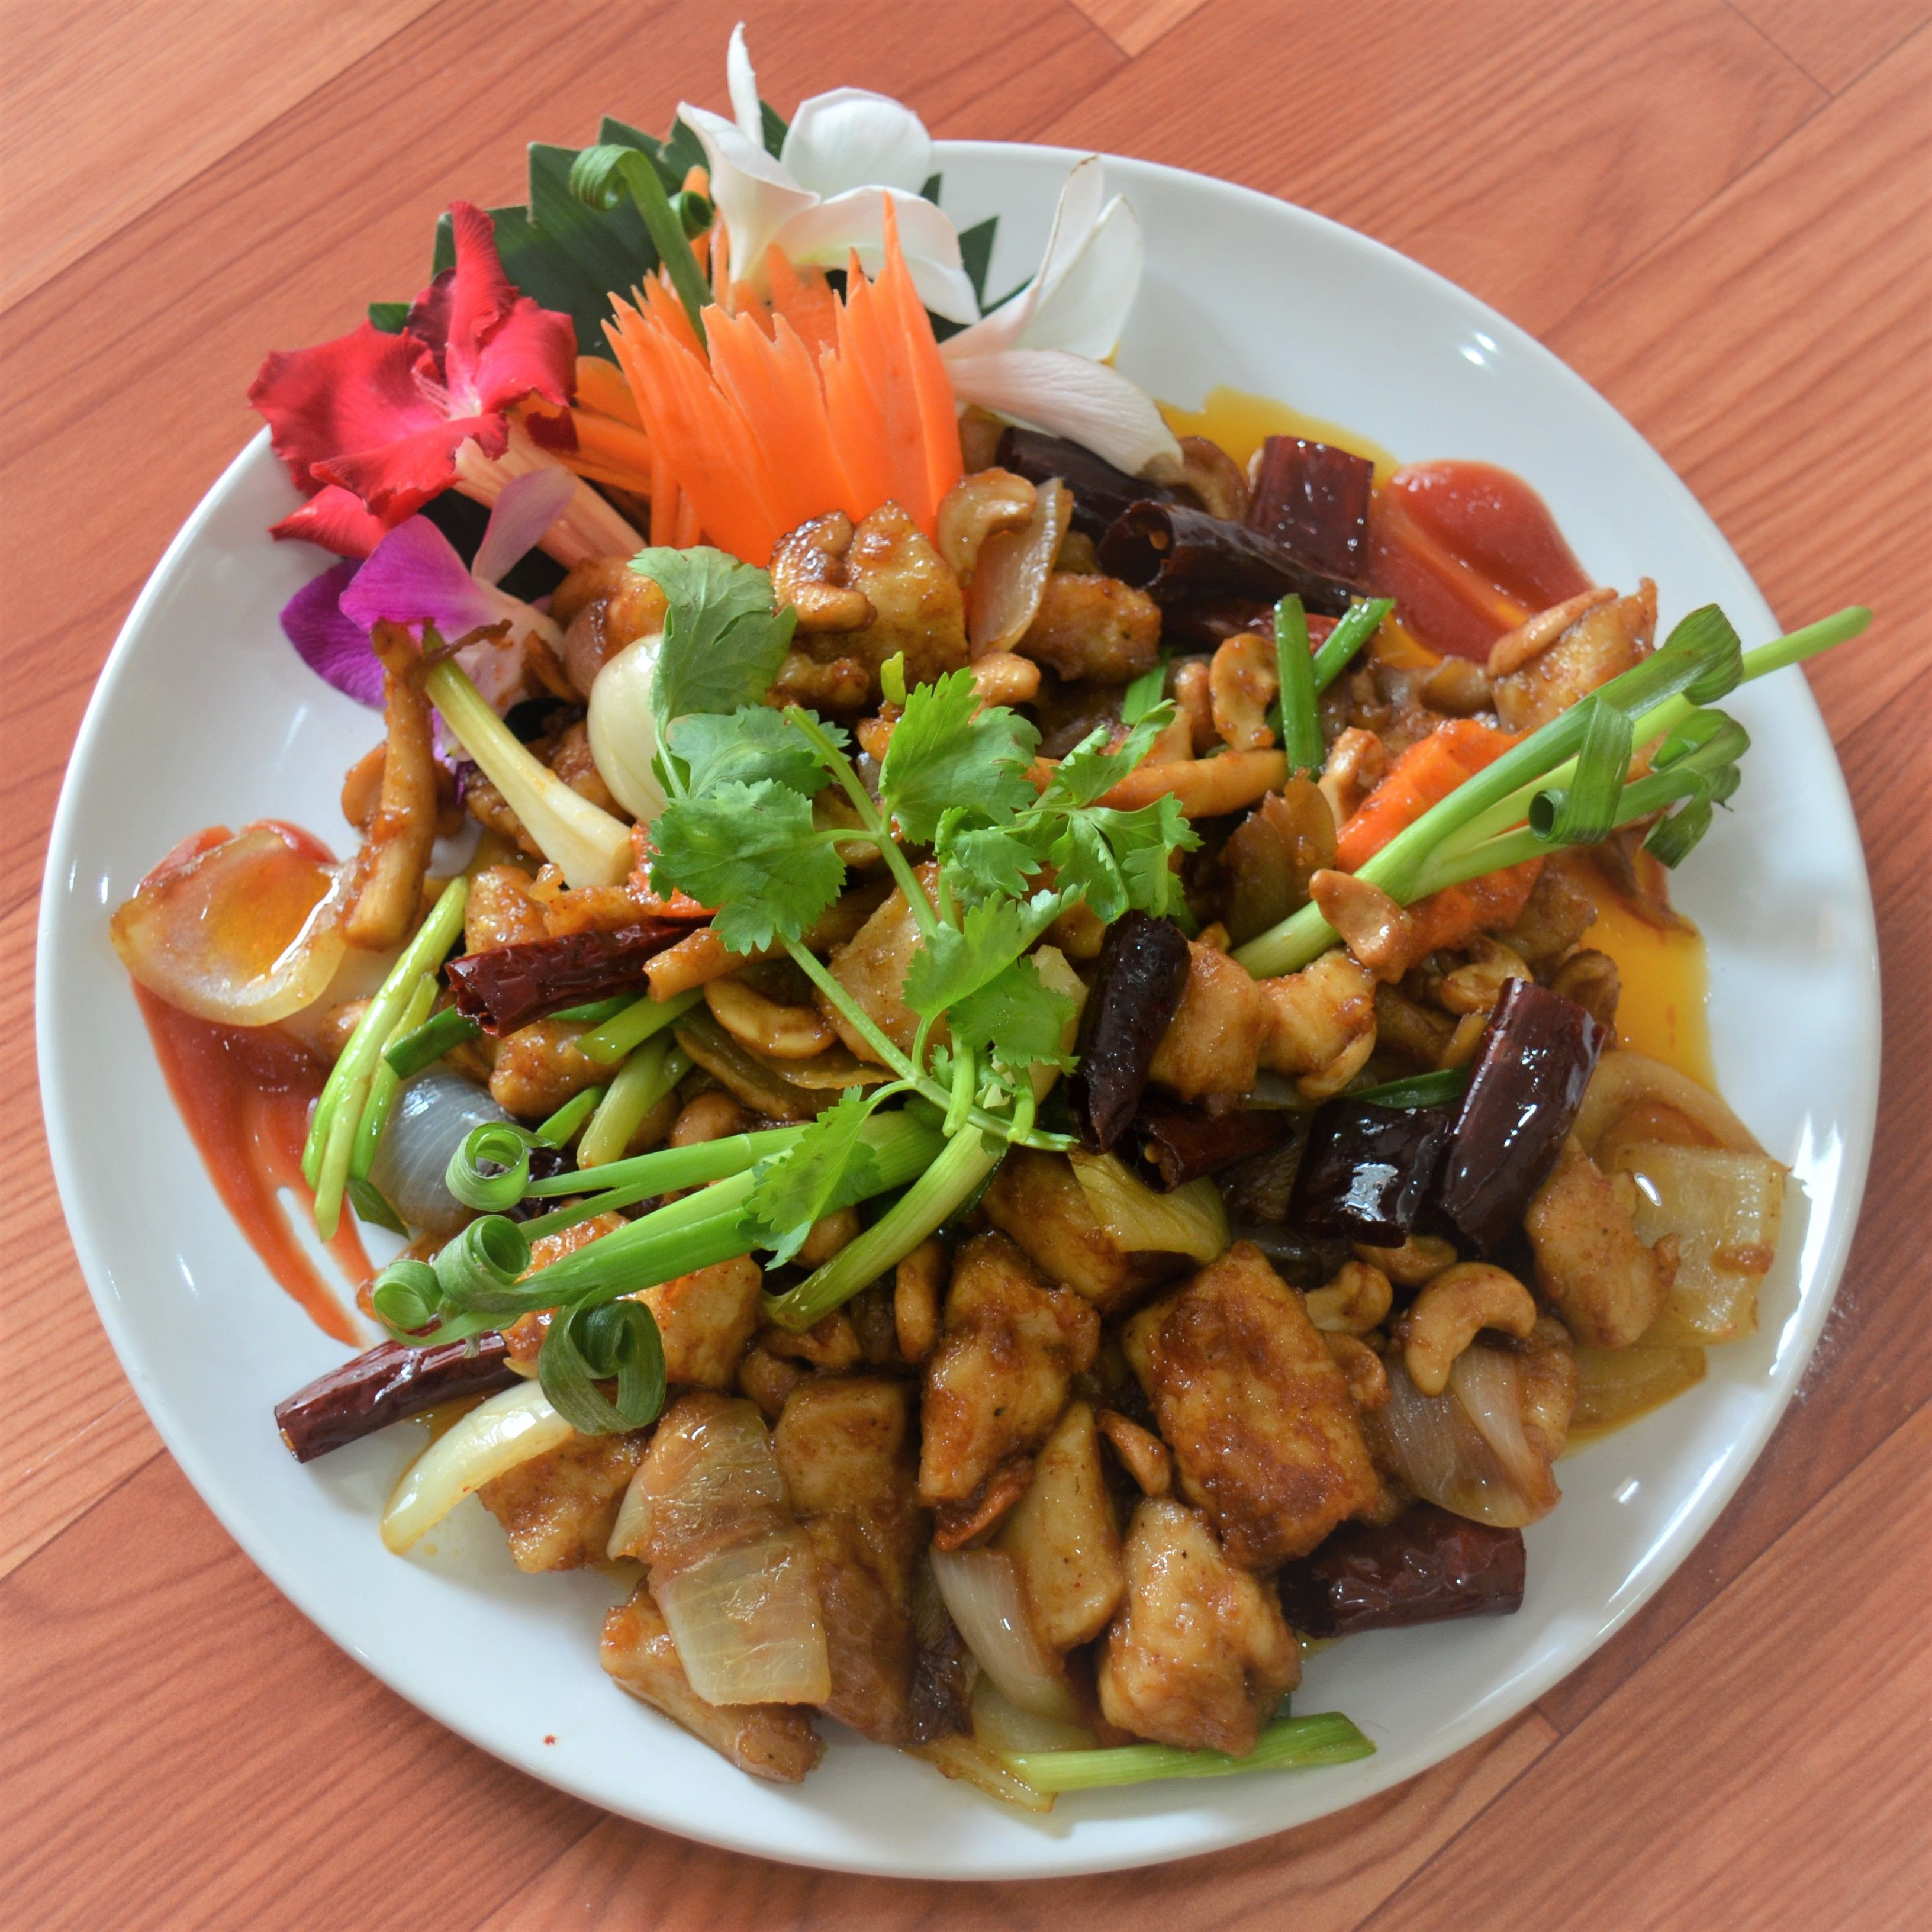 Express thai cooking class koh samui in koh samui book for Gardening classes near me